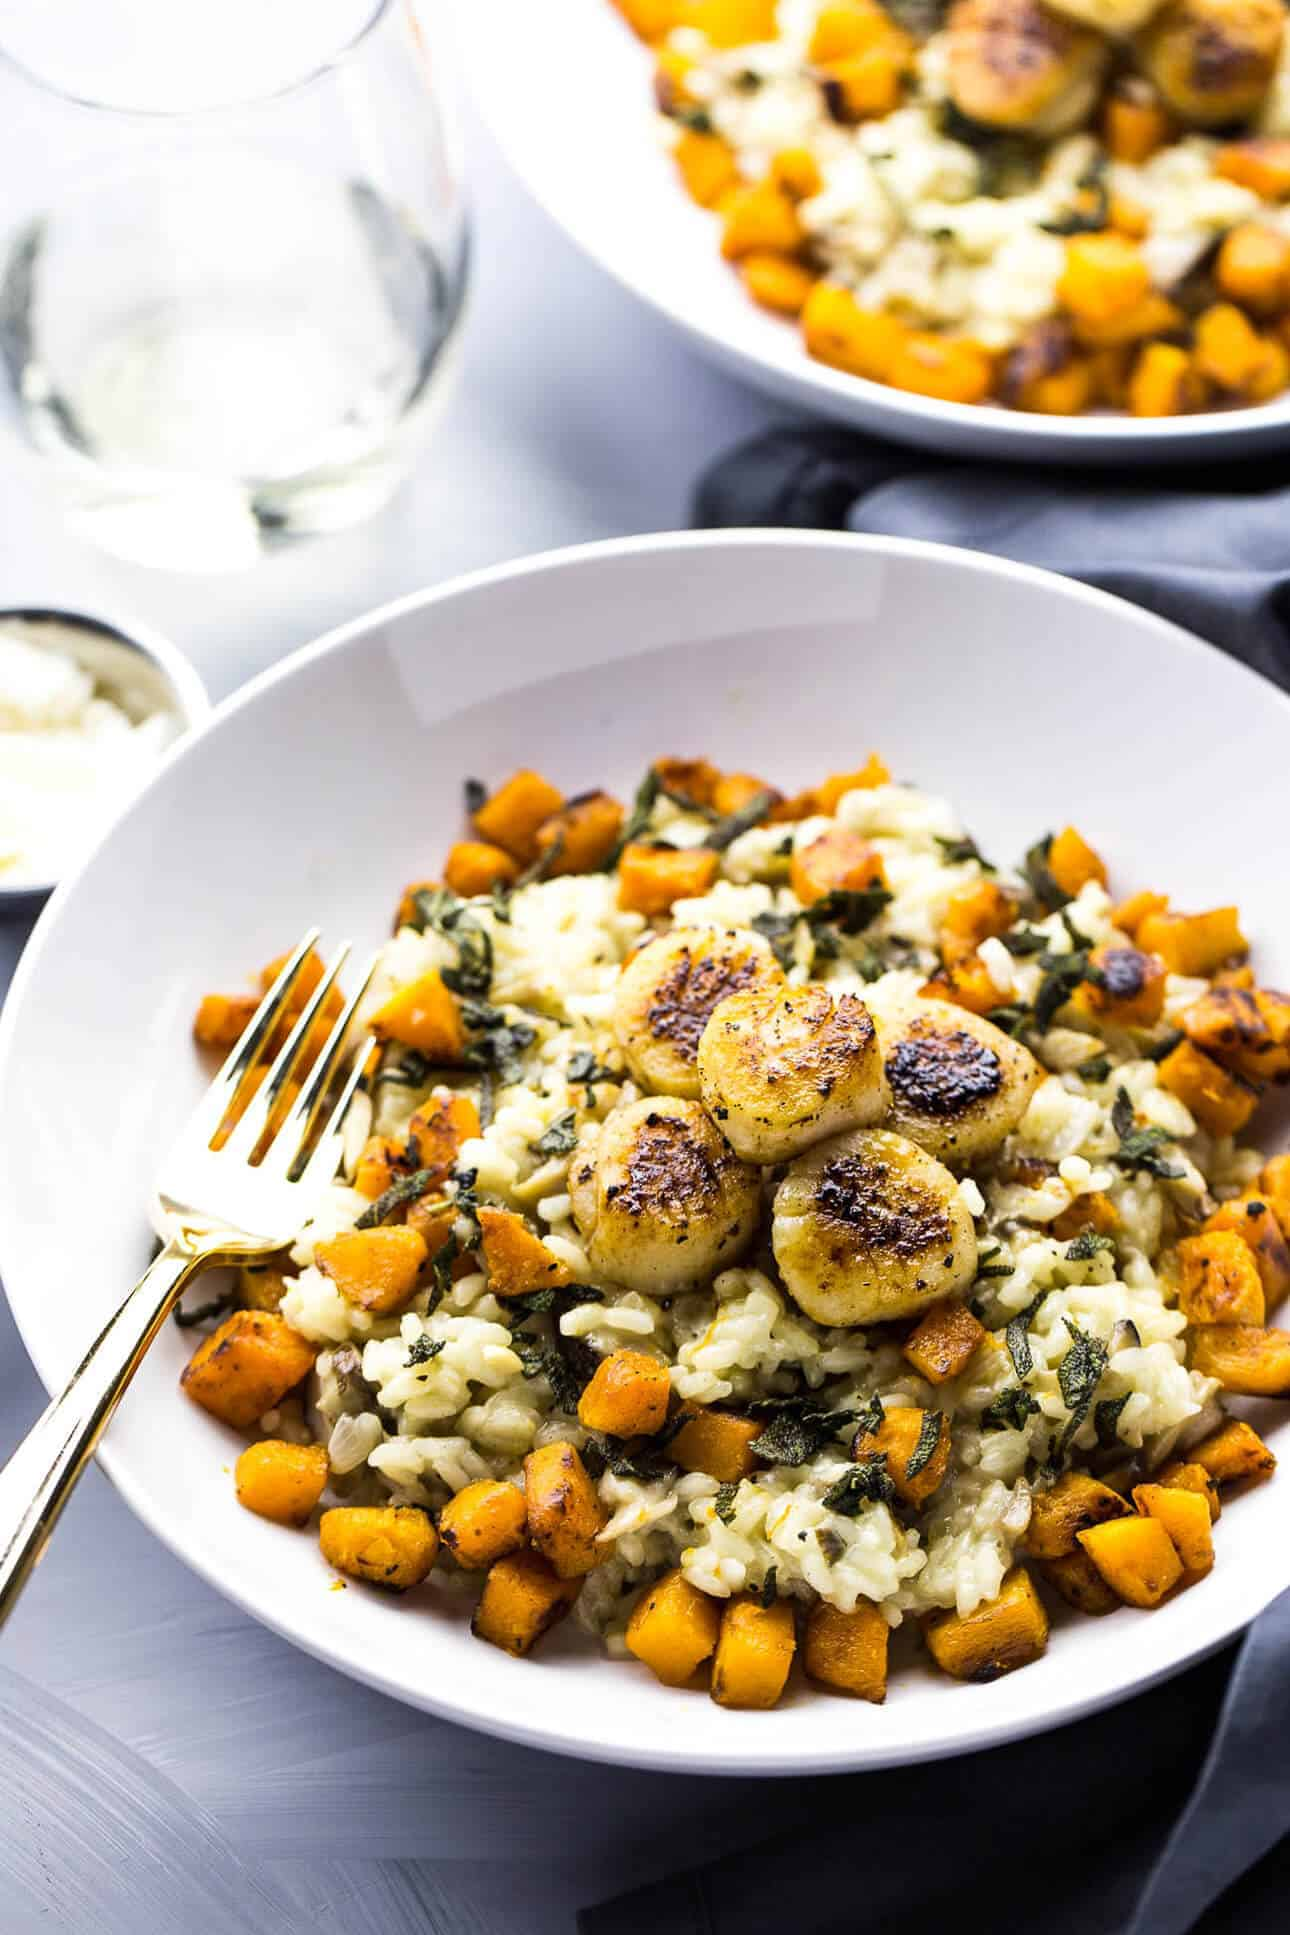 {Cooking with Friends} Seared Scallops with Butternut Squash Risotto, by The Girl on Bloor